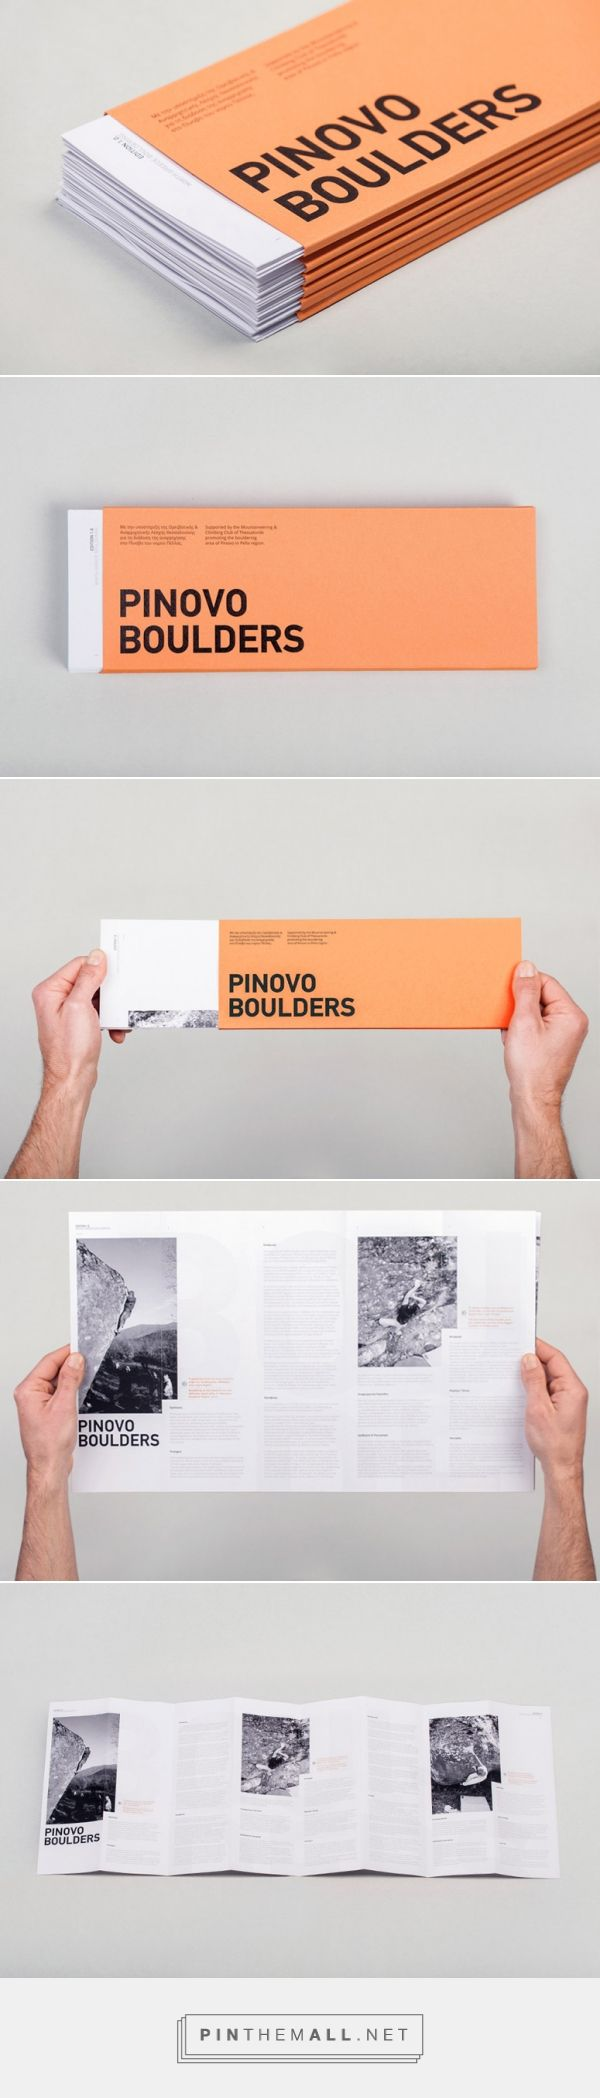 FPO: Pinovo Boulders Brochure #design #brochure #marketing #jablonskimarketing #creative